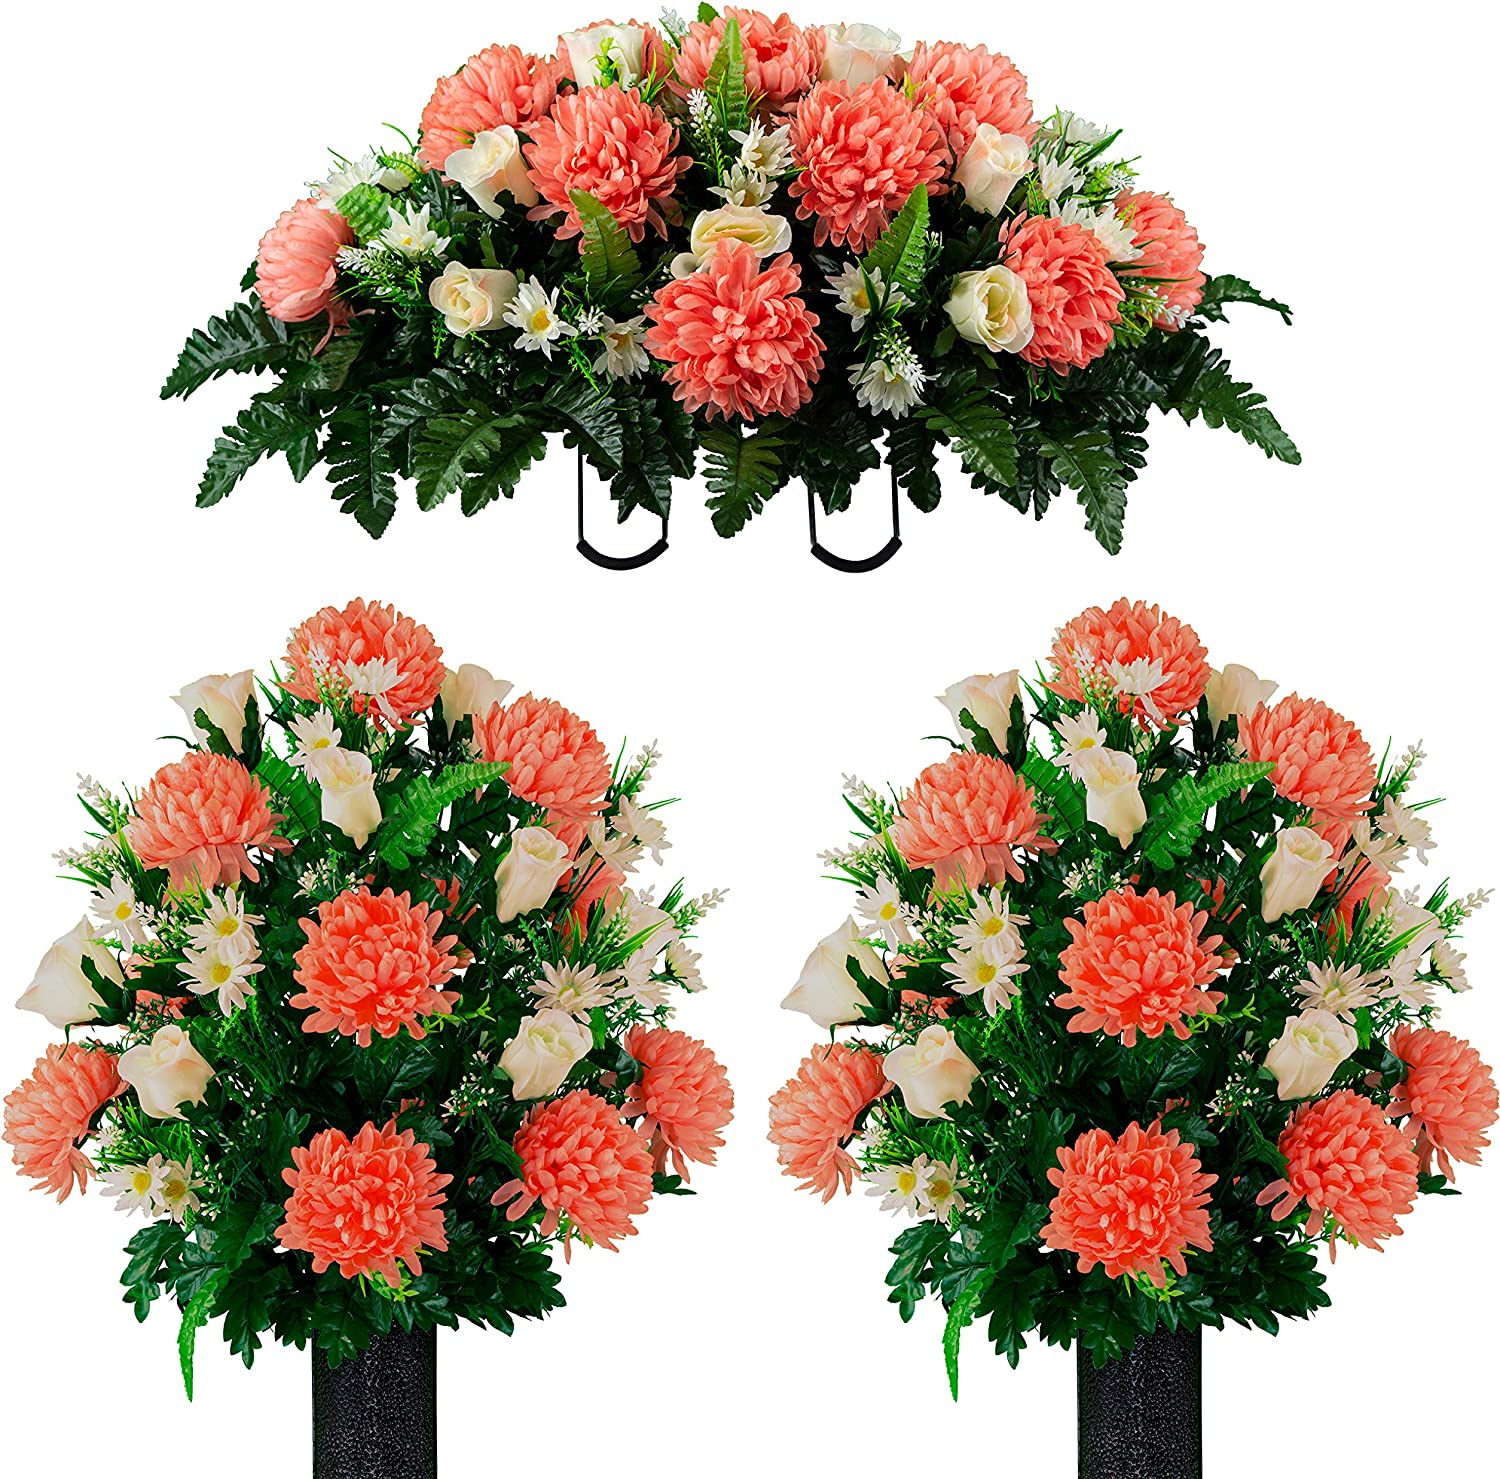 Cash special price Sympathy Silks Artificial Cemetery Realistic Flowers New arrival Vibr –